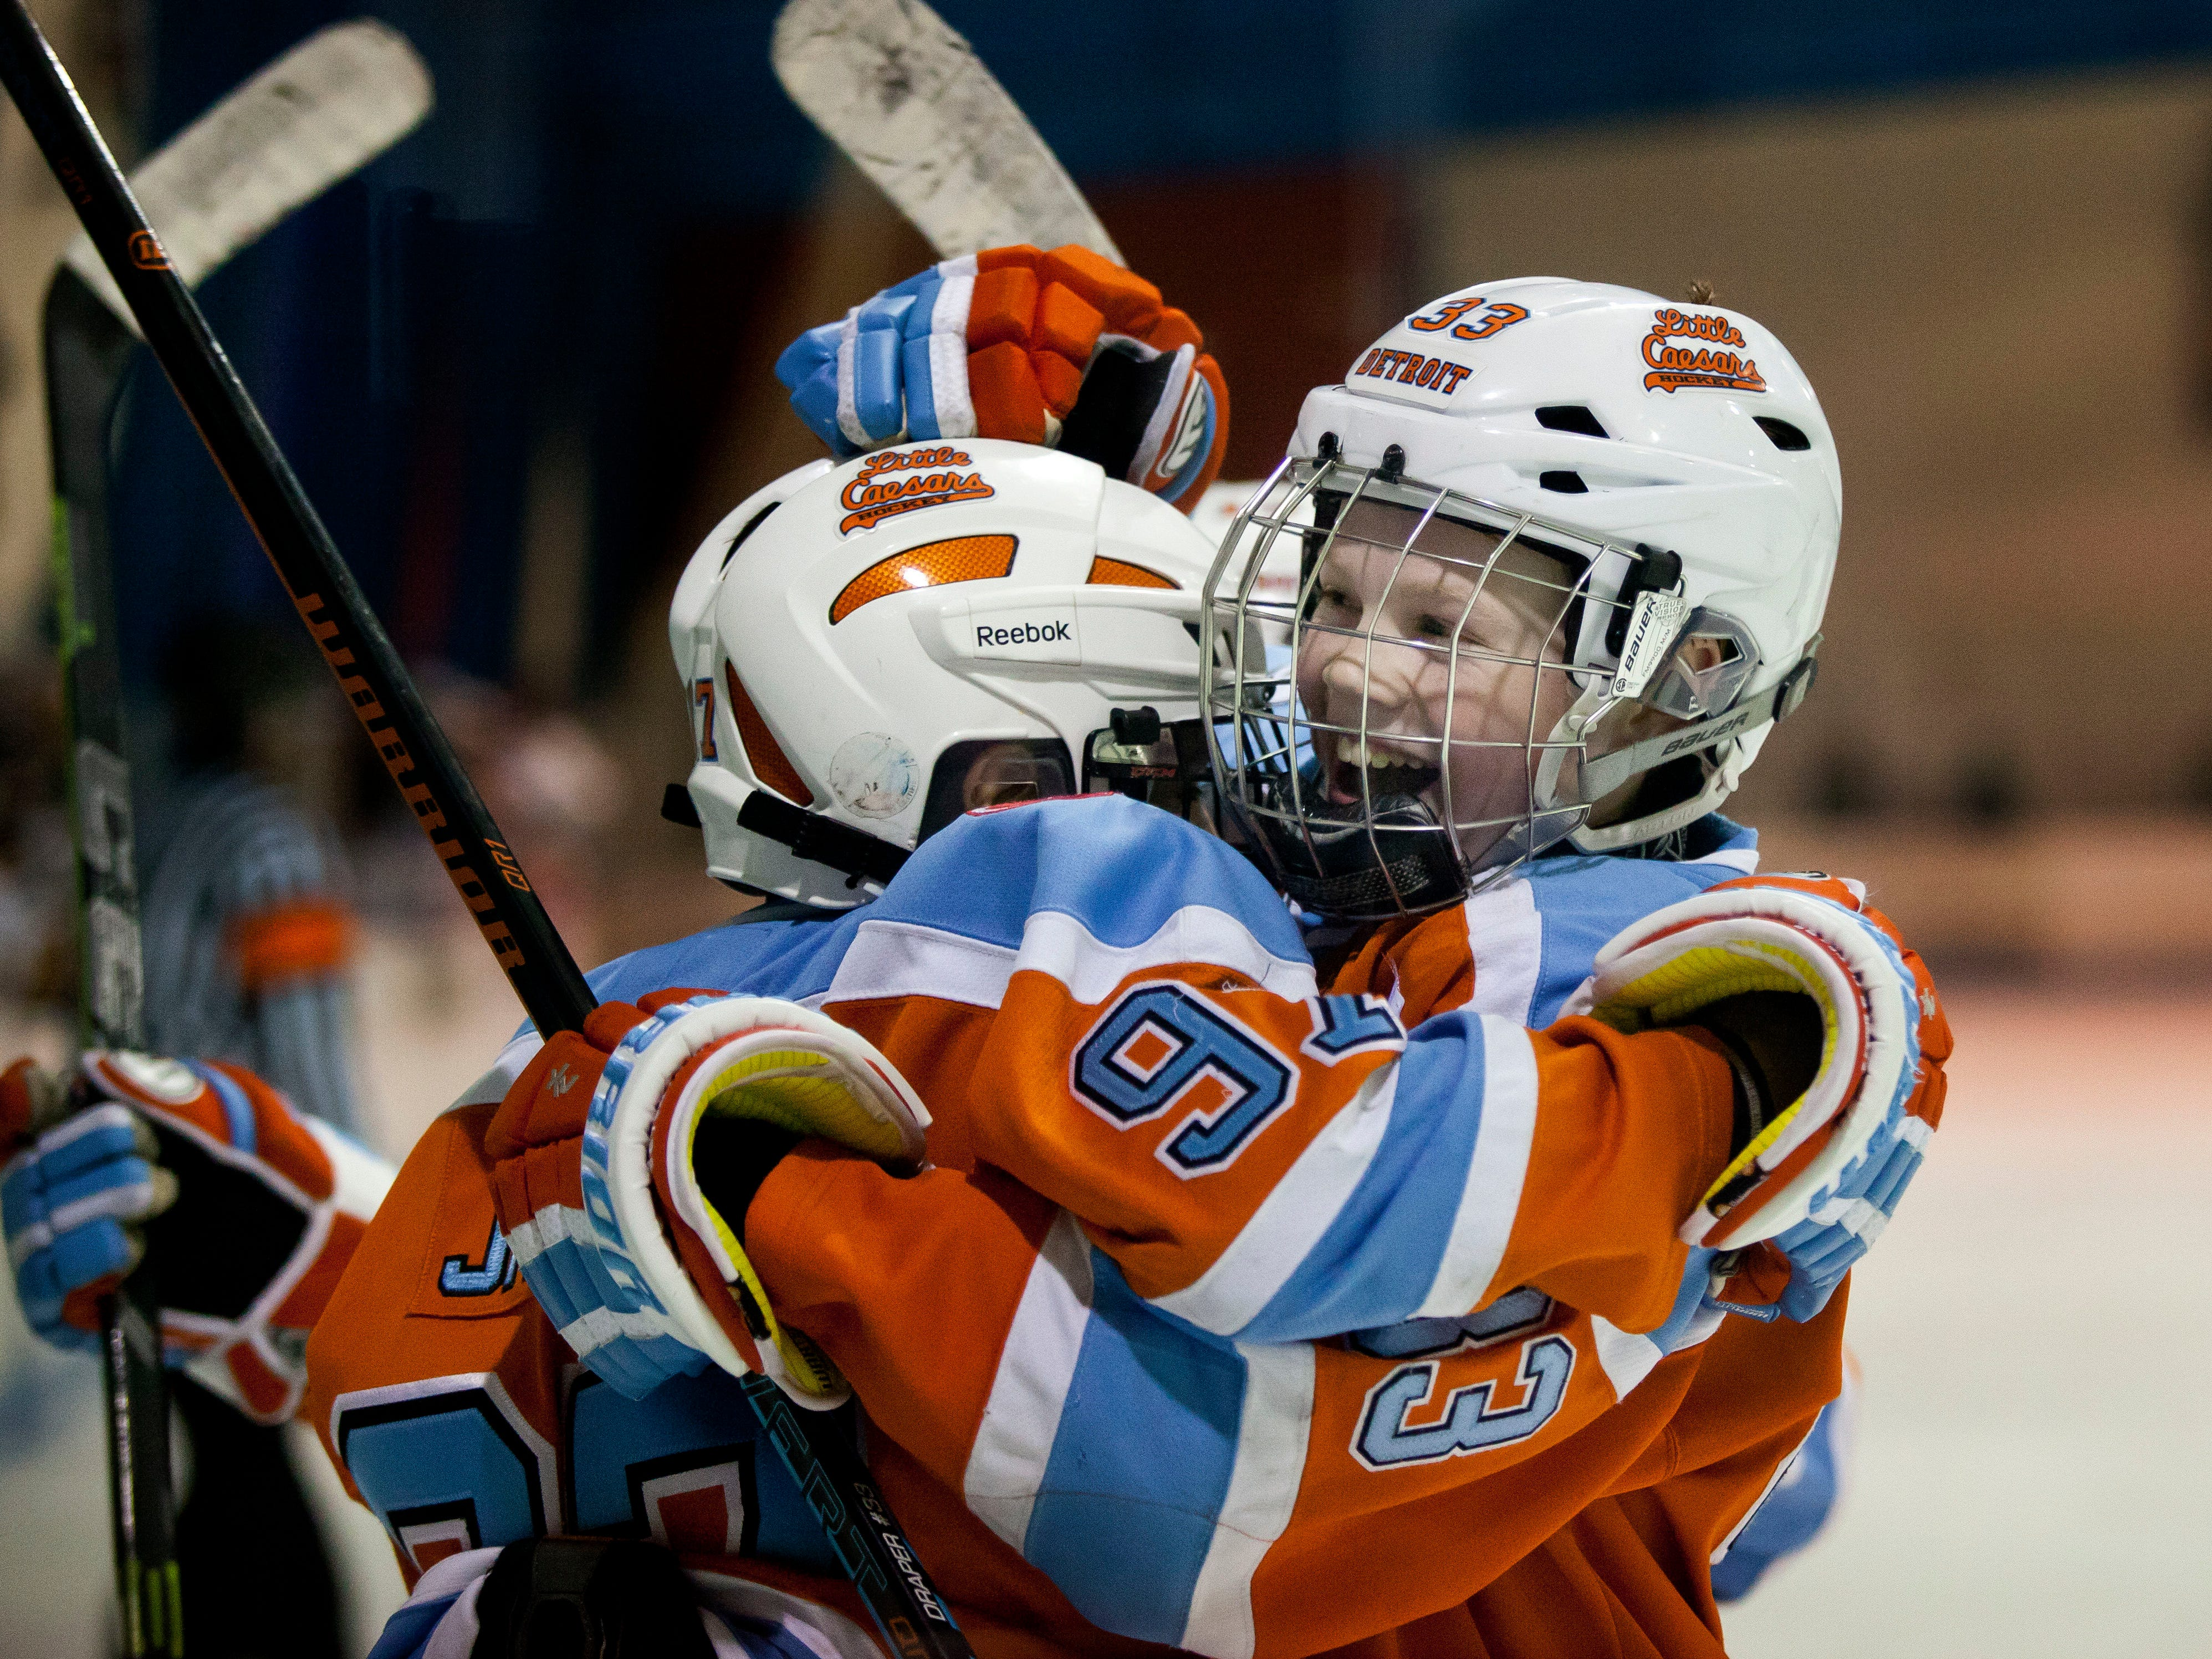 Detroit Little Caesars' Kienan Draper hugs Dominic James after he scored a goal during a Silver Stick Pee Wee AAA hockey game Friday, Jan. 9, 2015 at Glacier Pointe in Port Huron Township.